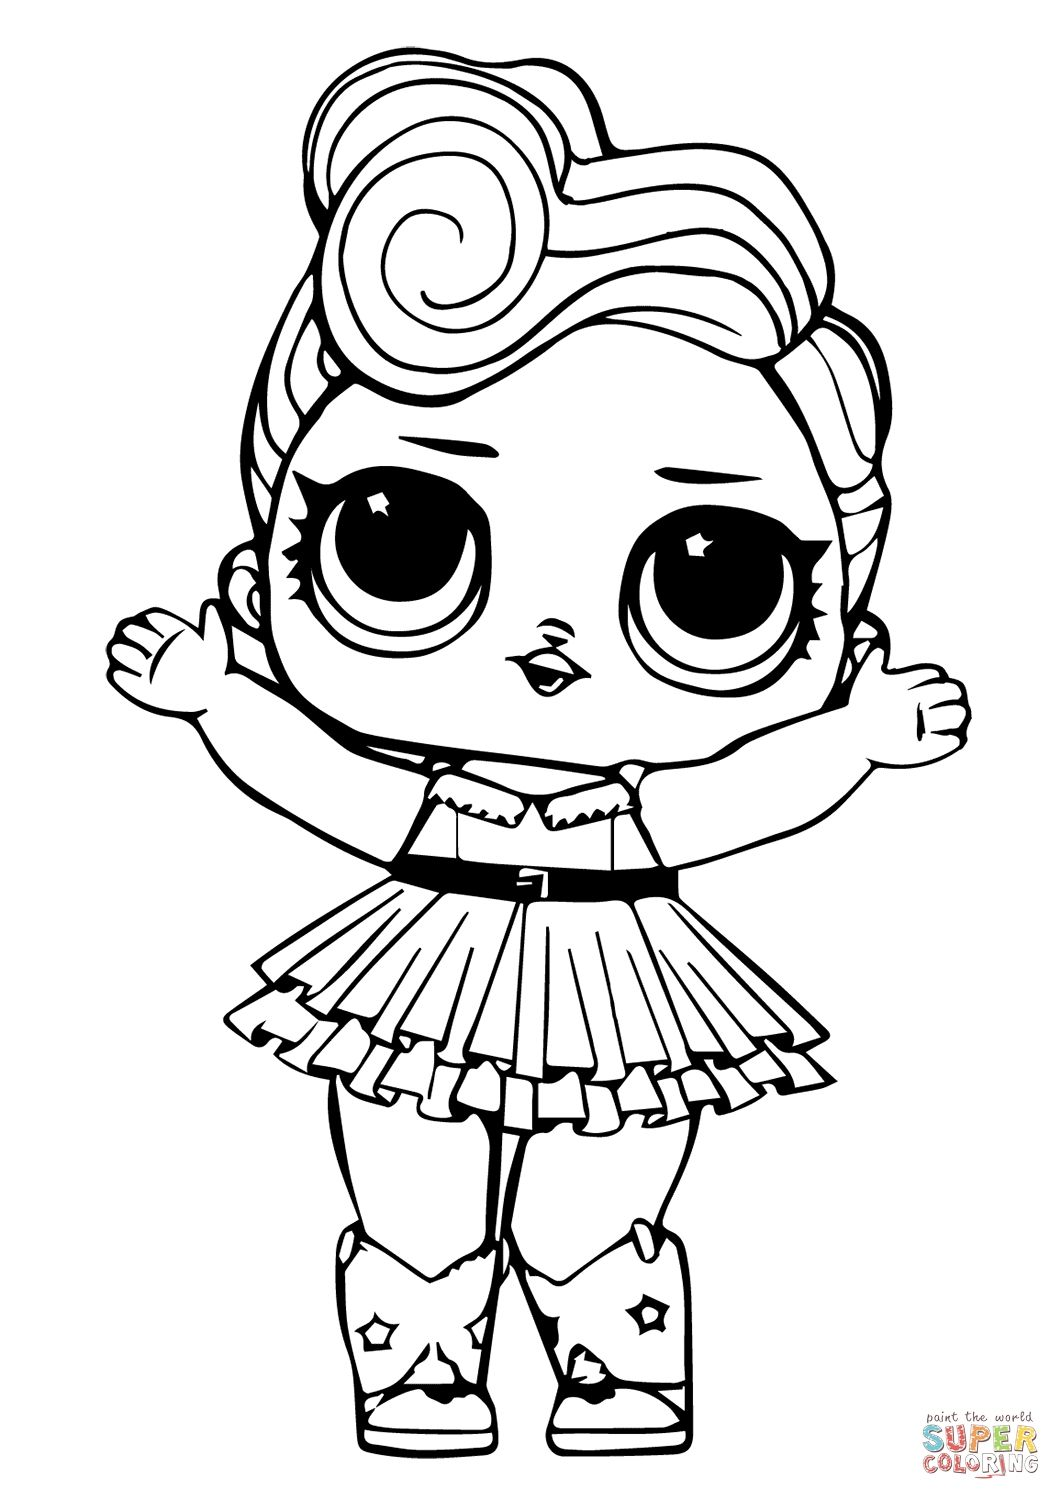 Lol Coloring Pdf Coloring Pages Allow Kids To Accompany Their Favorite Characters Unicorn Coloring Pages Kids Printable Coloring Pages Animal Coloring Pages